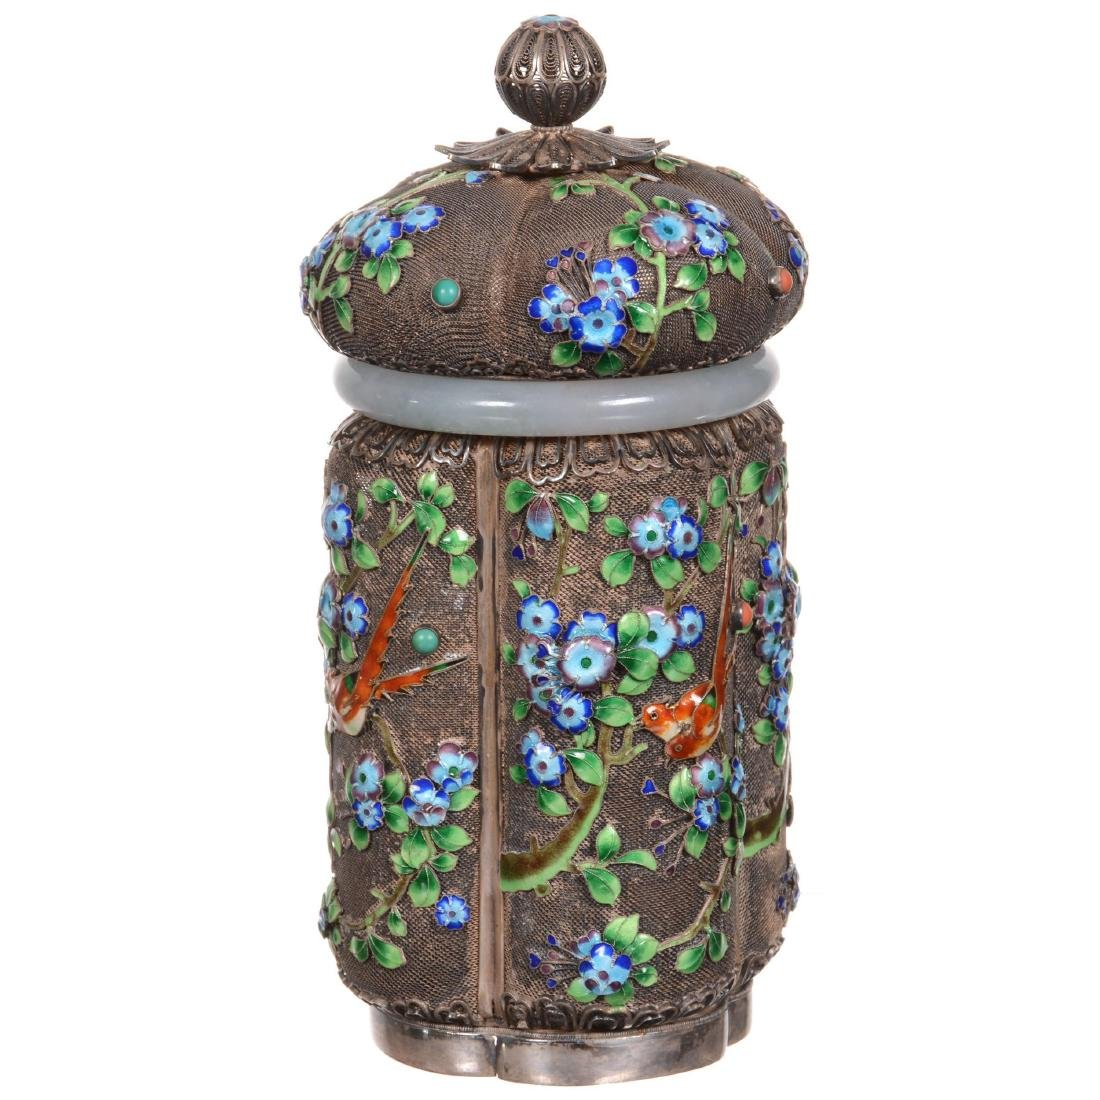 Chinese Enameled Silver Tea Caddy with Jade Collar - 2